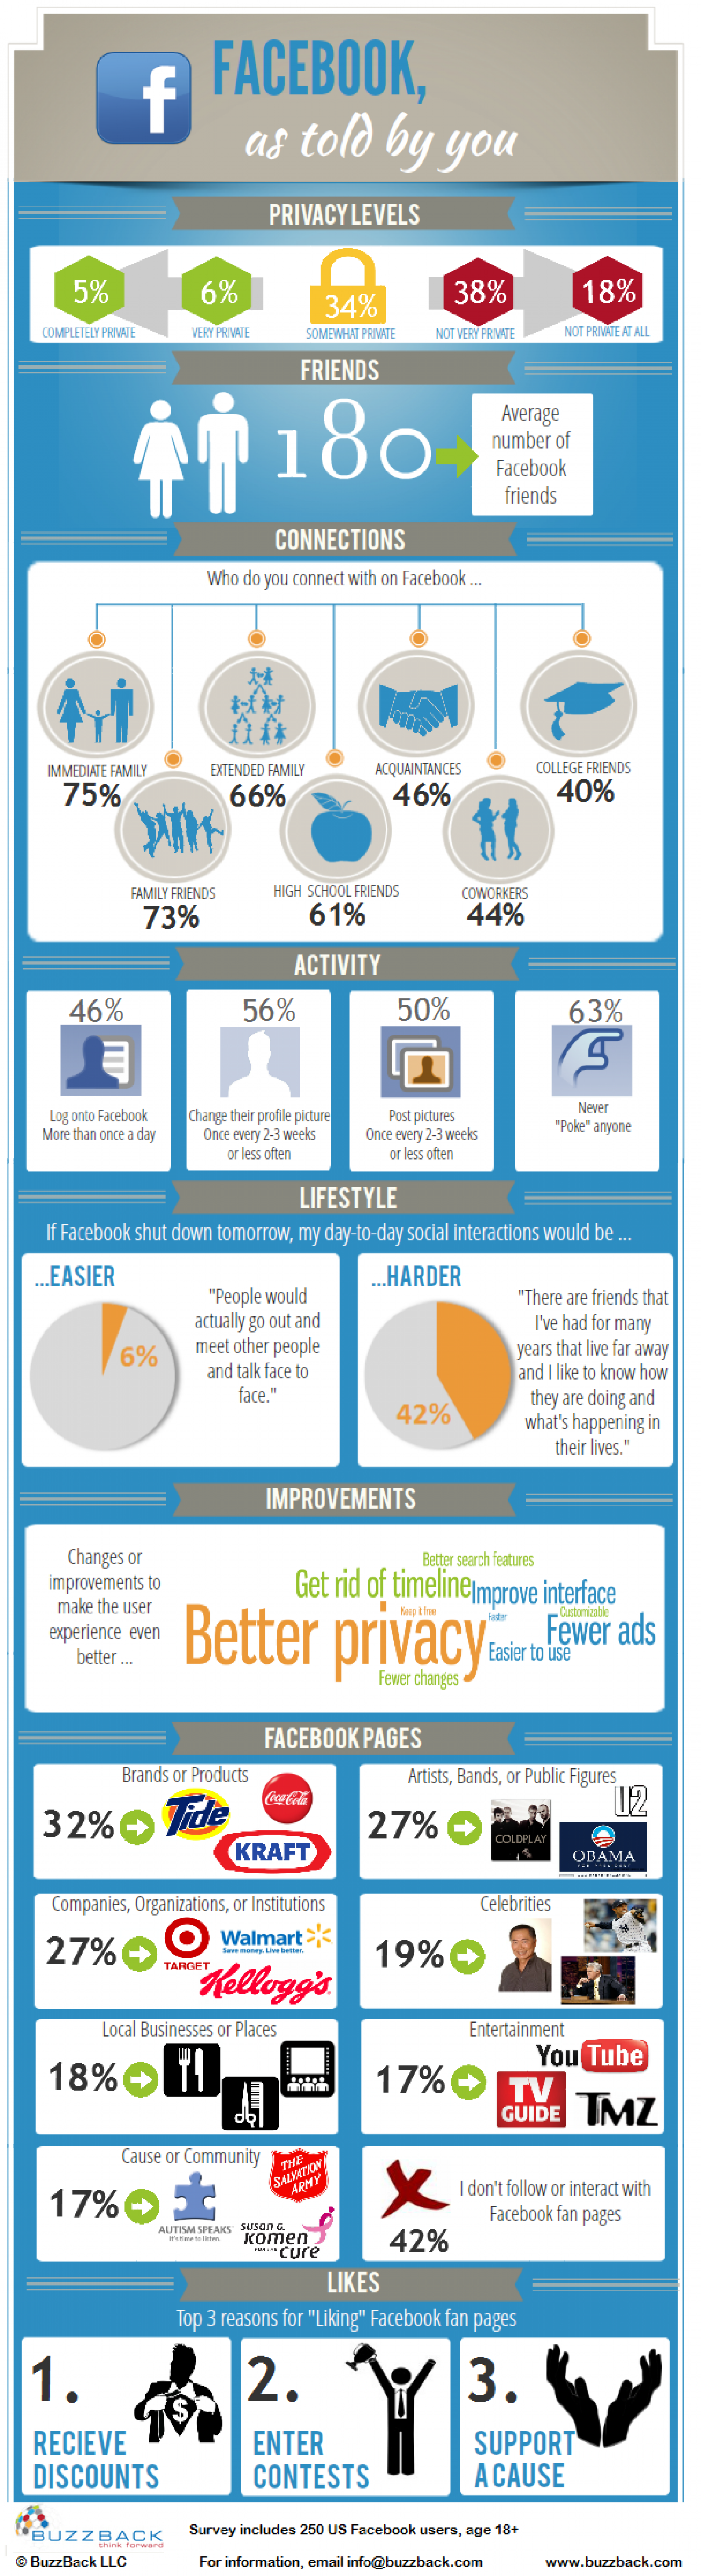 Facebook, as told by you Infographic